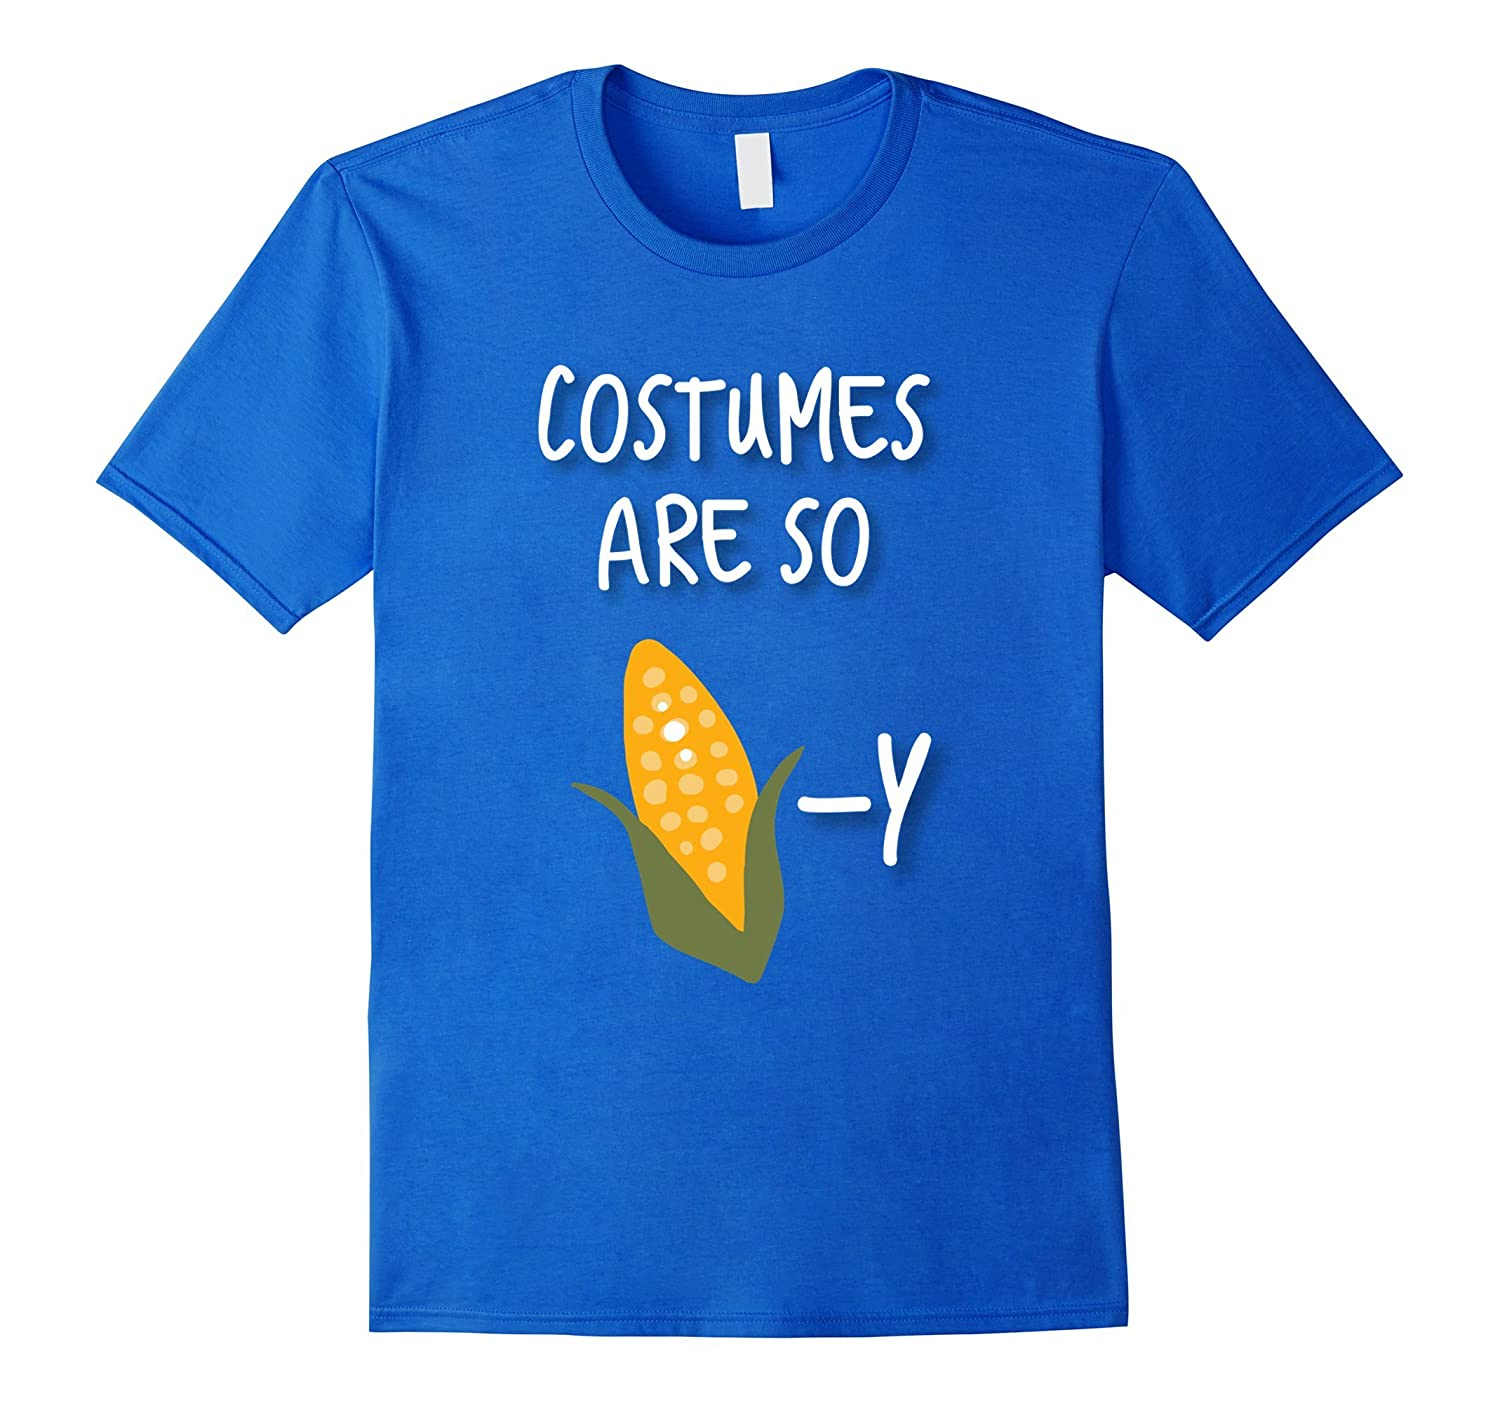 0df51a1d32 Costumes Are So Corn-y Pun Halloween Funny Lazy T-shirt-ANZ ⋆ Anztshirt